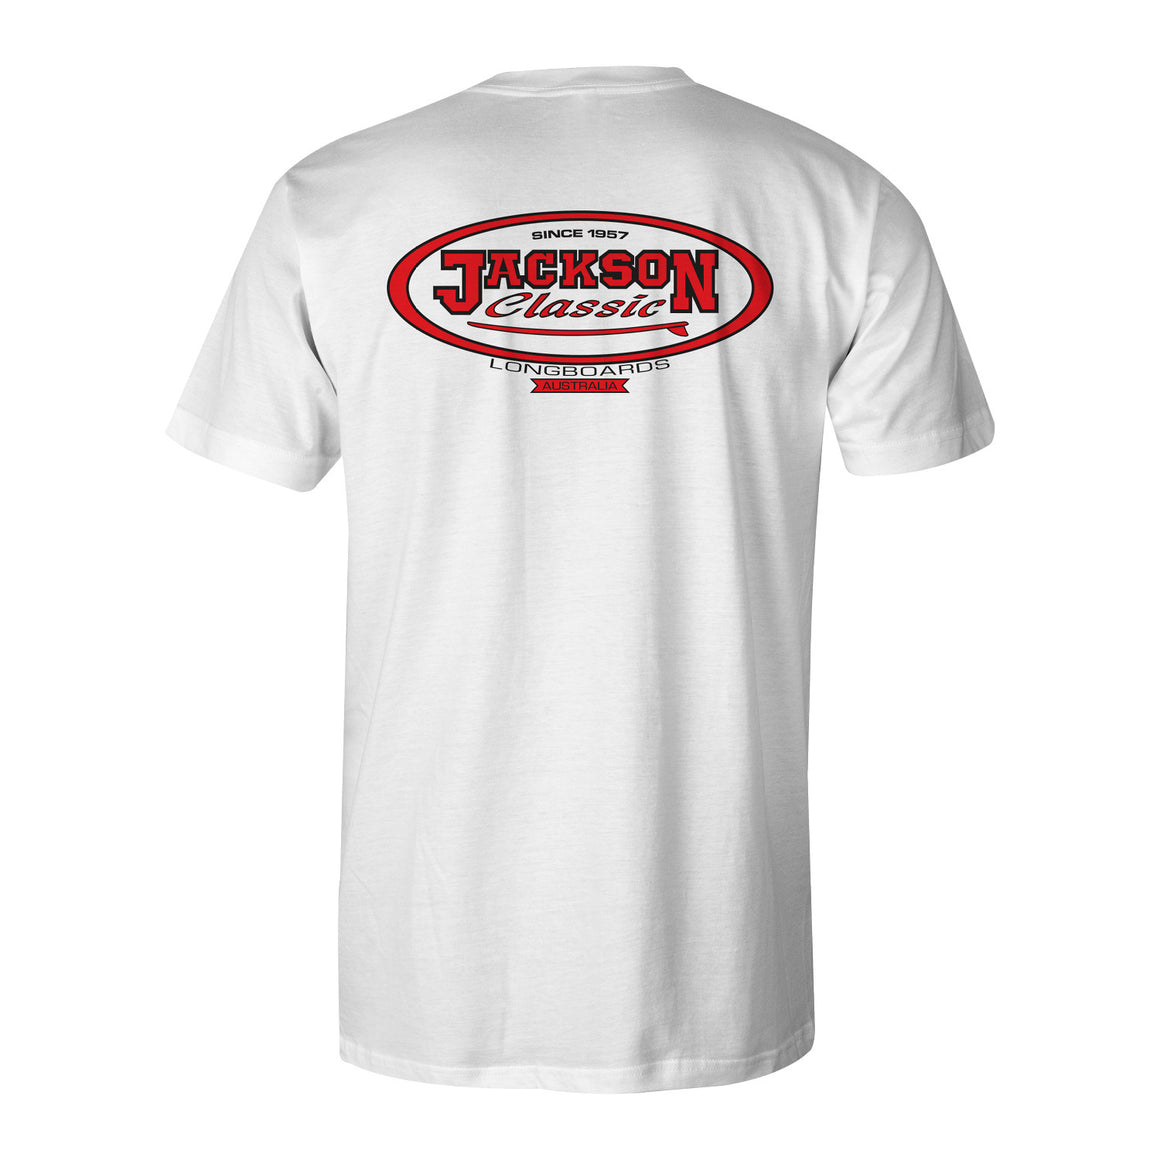 Jackson Surfboards T-Shirt White